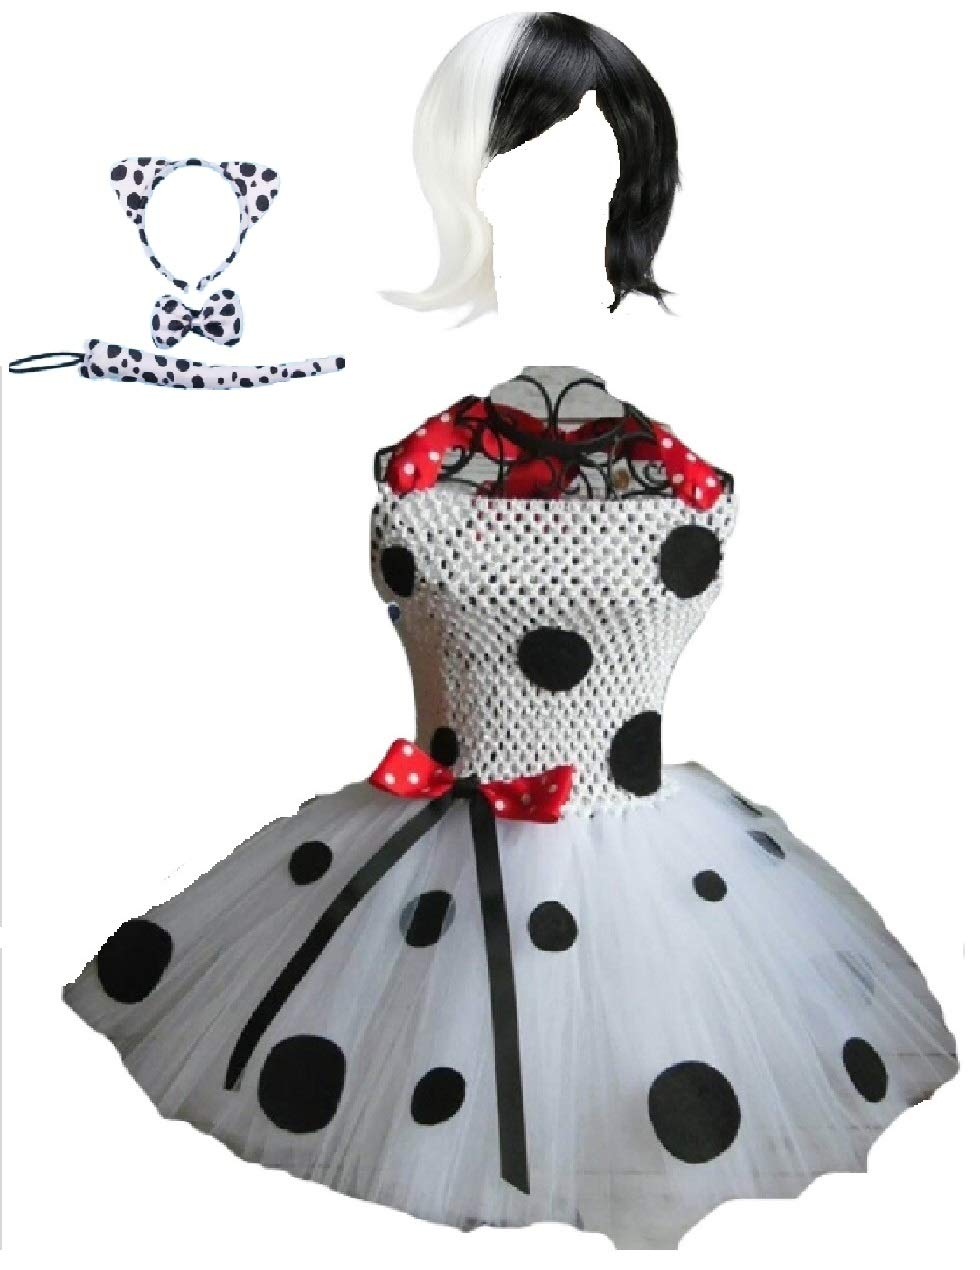 The DeVille Dalmation Costume Tutu Dress w/Accessories from Chunks of Charm (10)